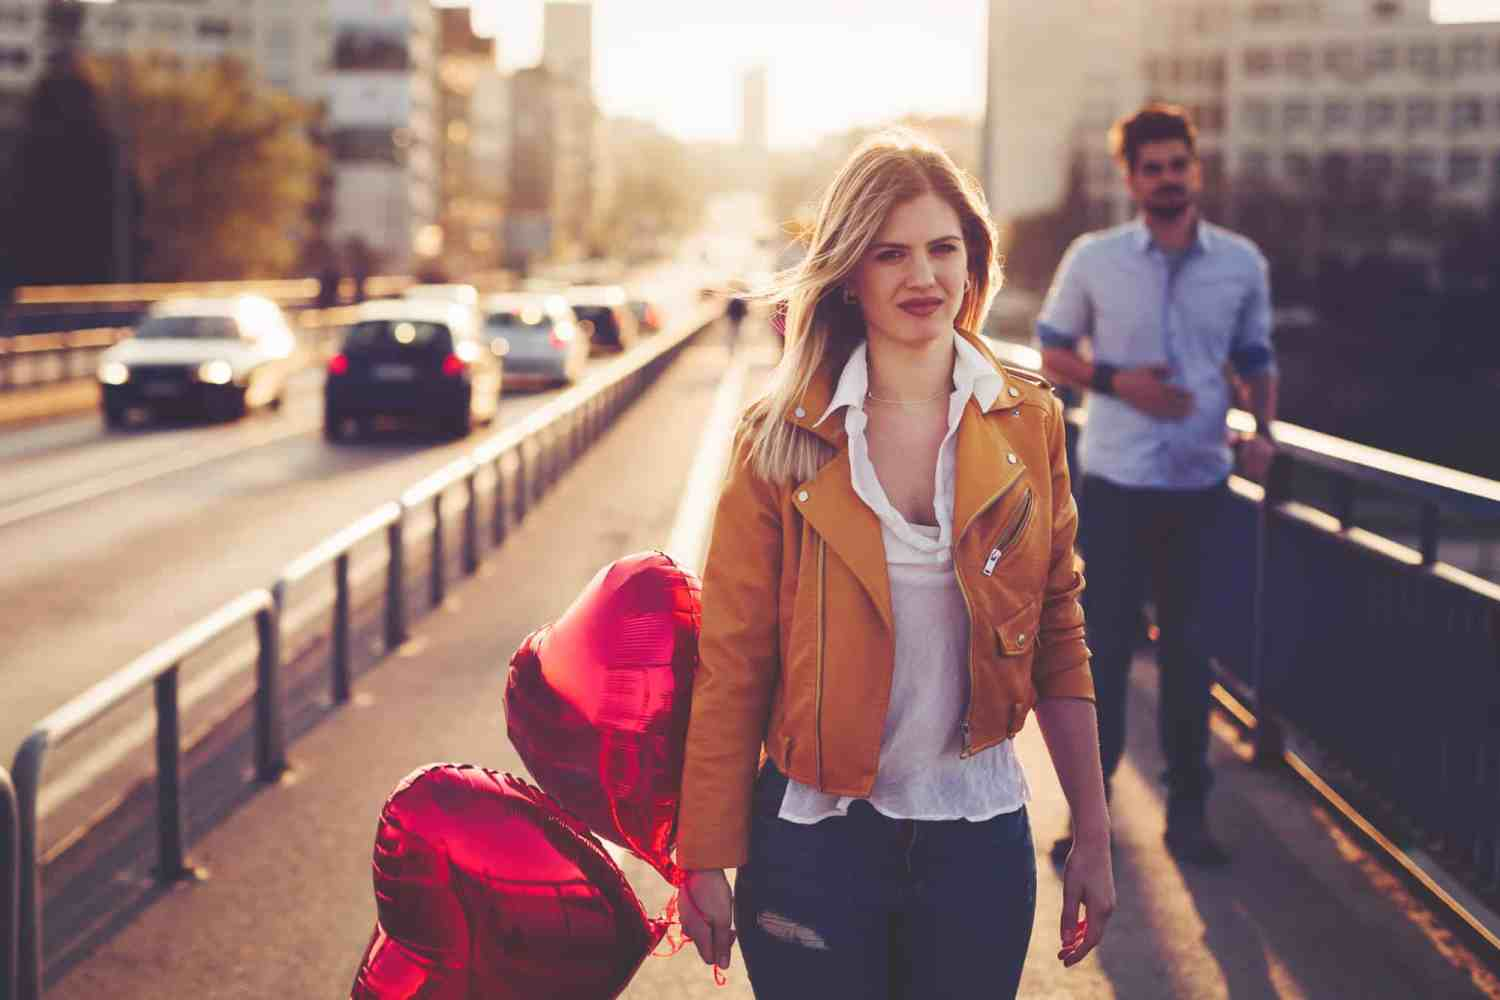 Meeting The Right Person At The Wrong Time? The Secrets Behind Perfect Timing In Love